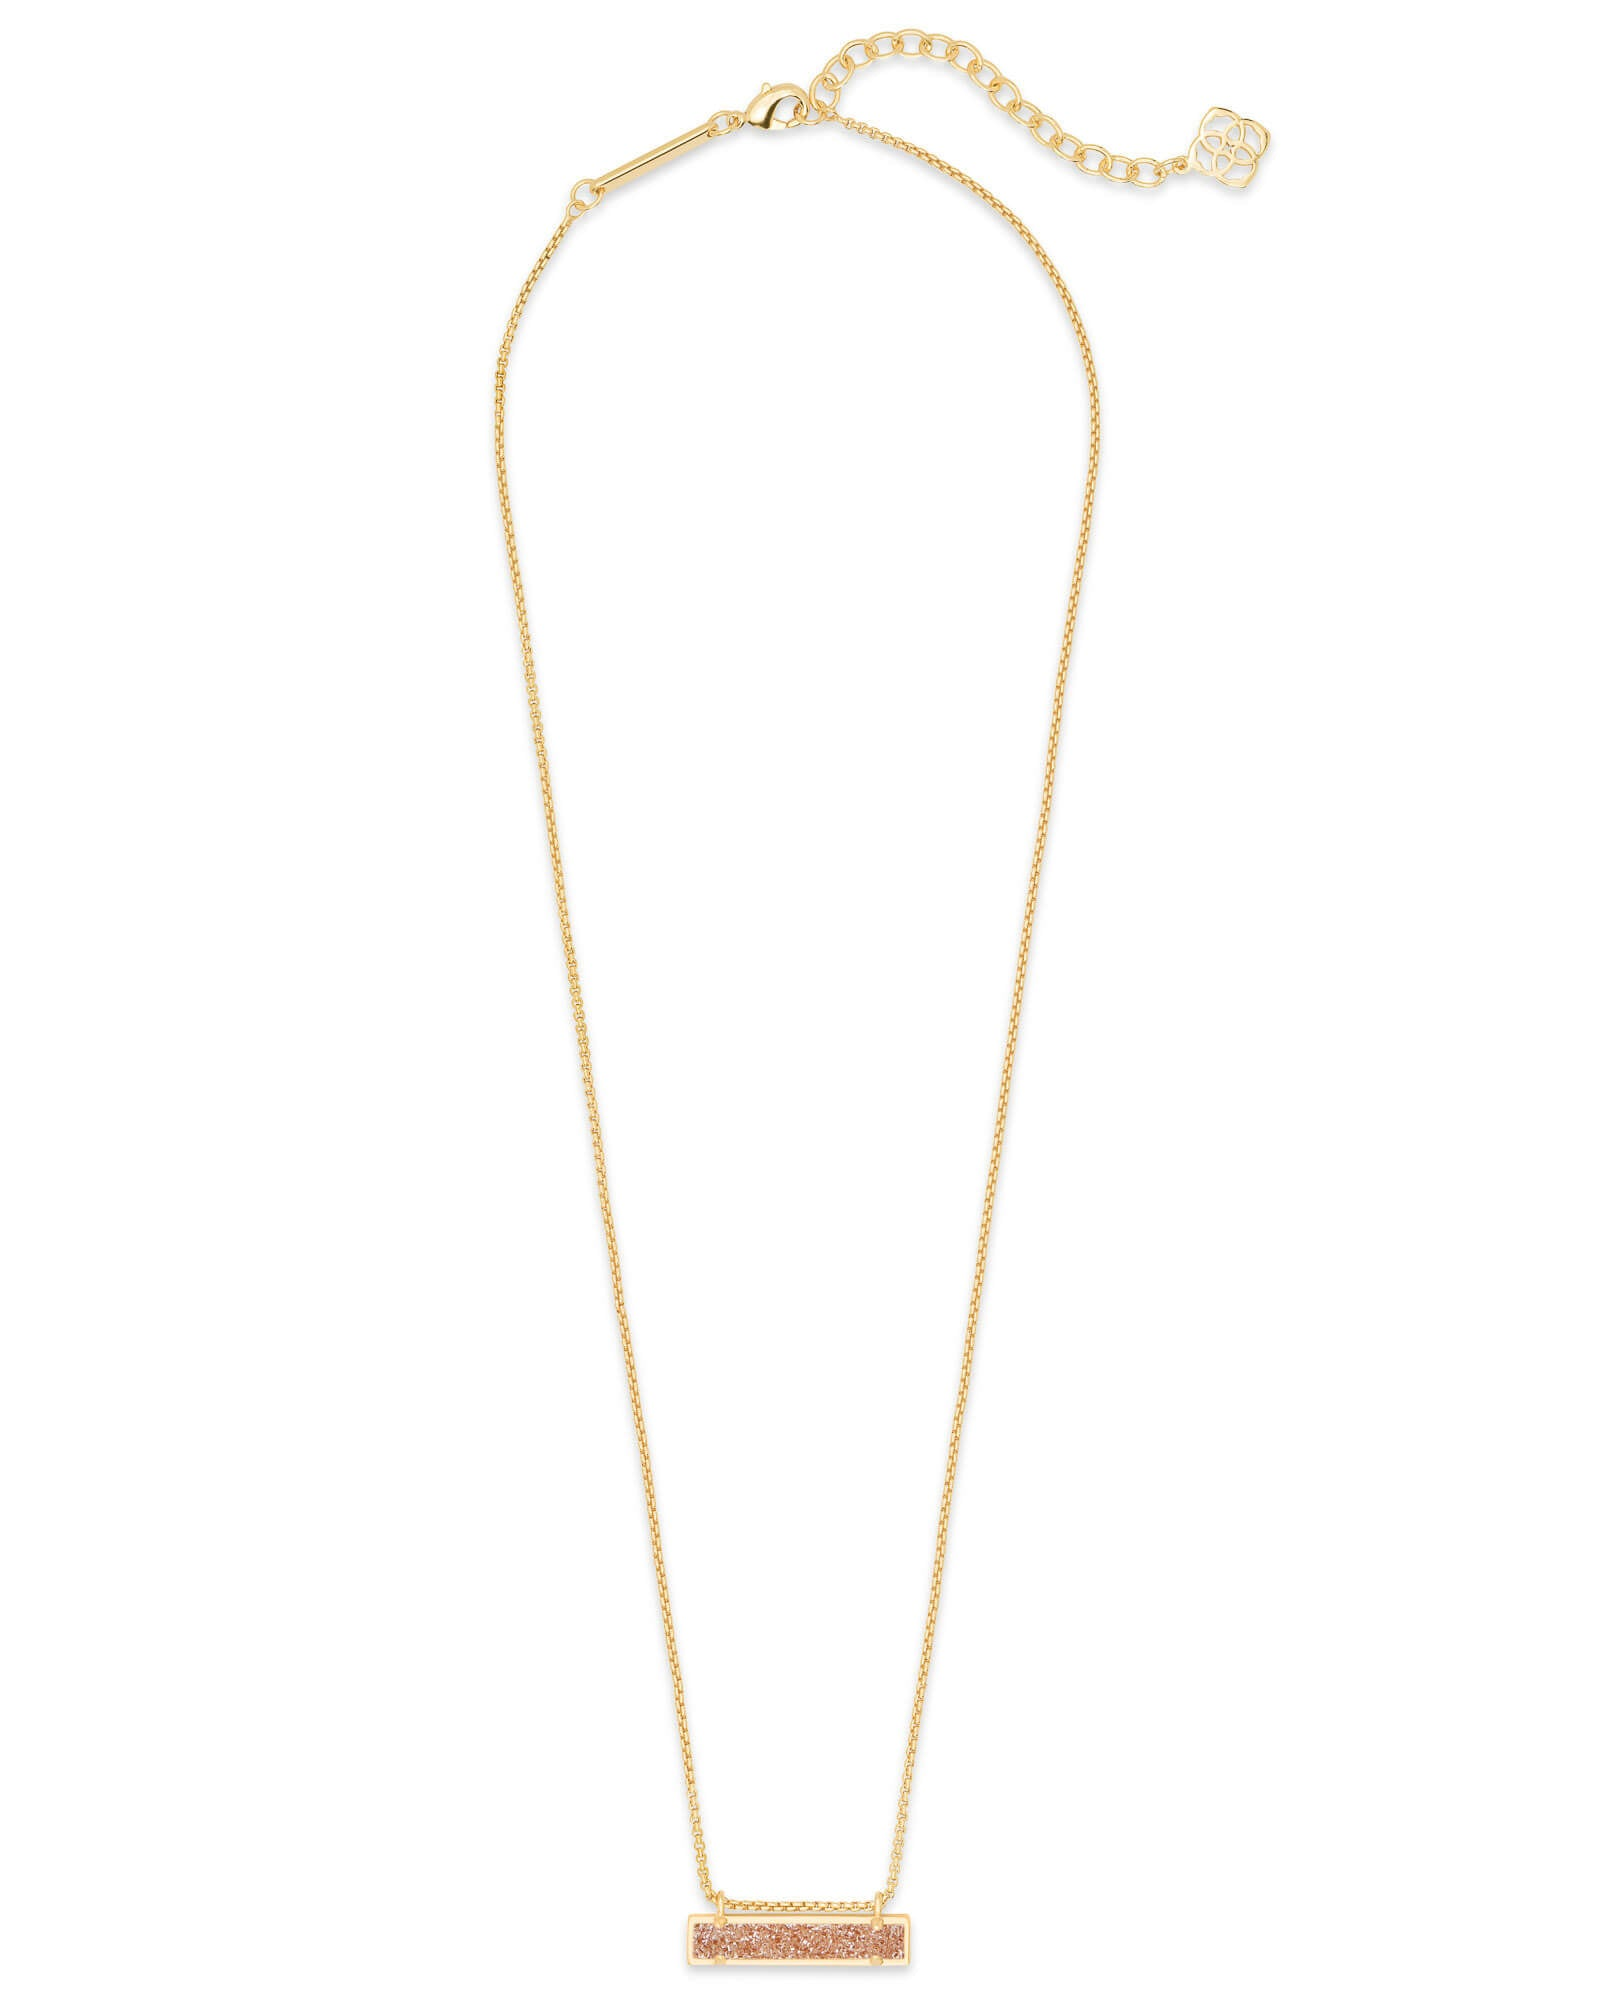 Leanor Gold Pendant Necklace in Sand Drusy